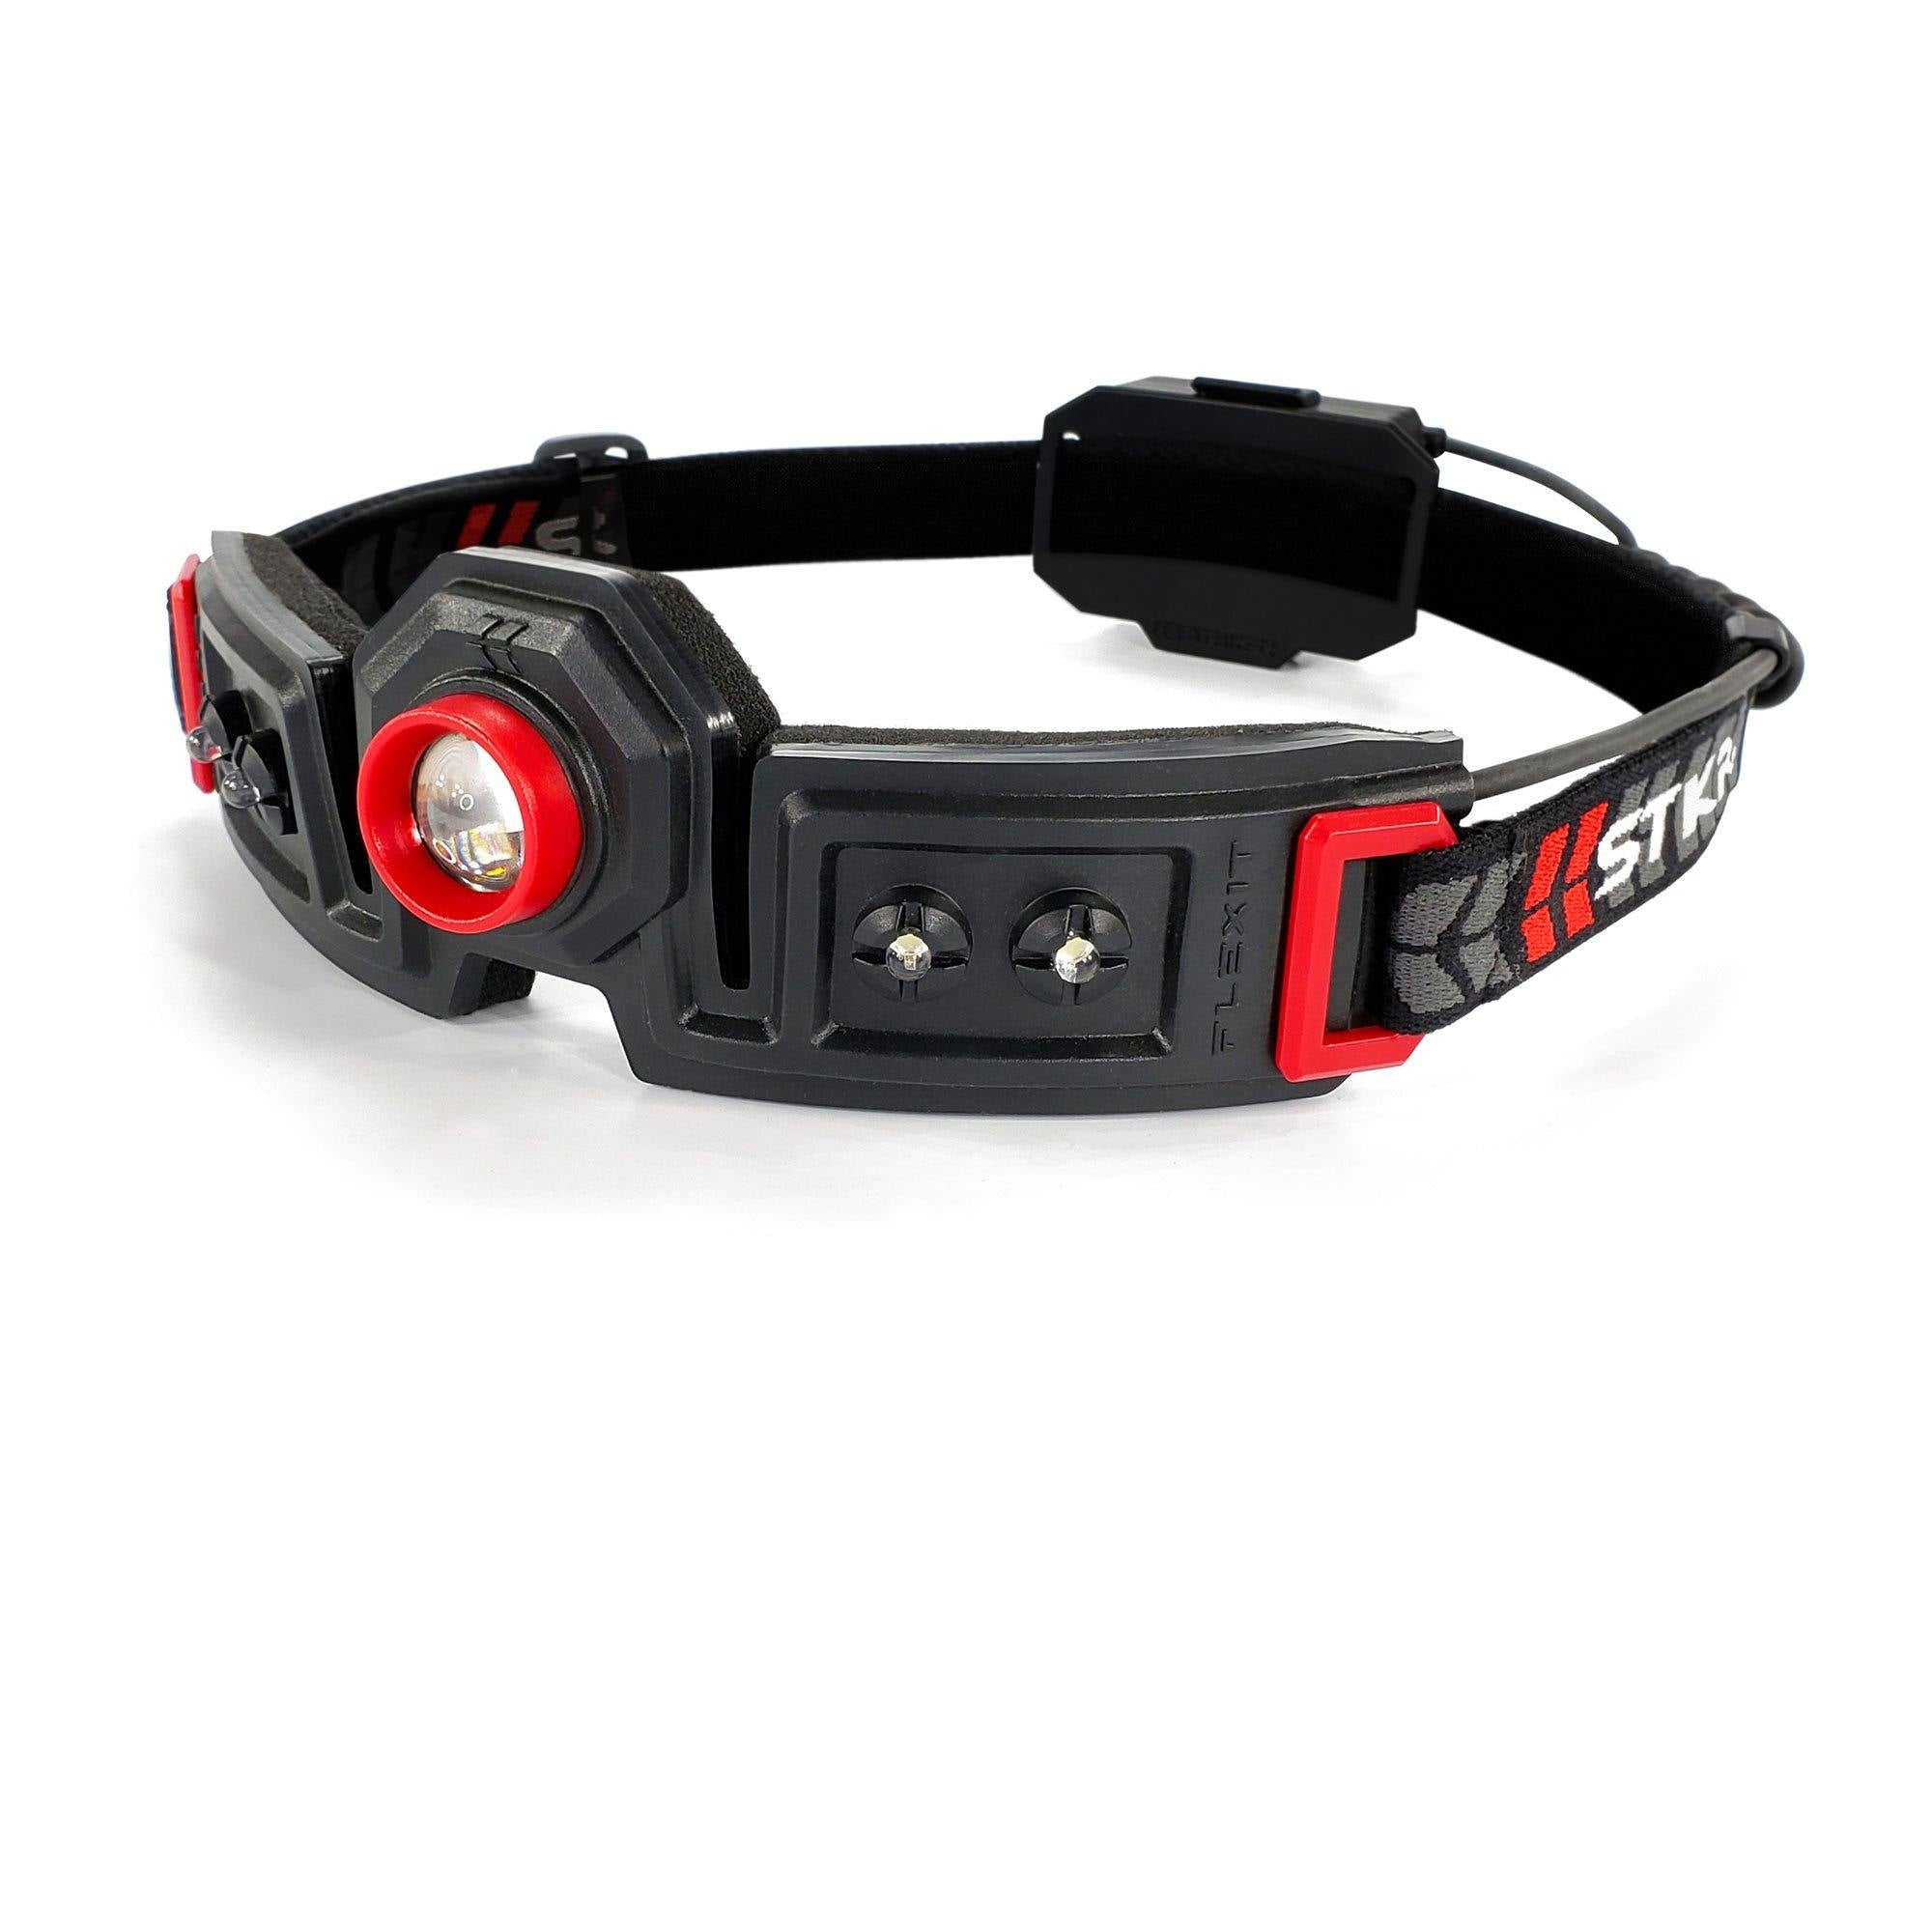 STKR Concepts FLEXIT Headlamp 2.5 with 180 degree halo lighting